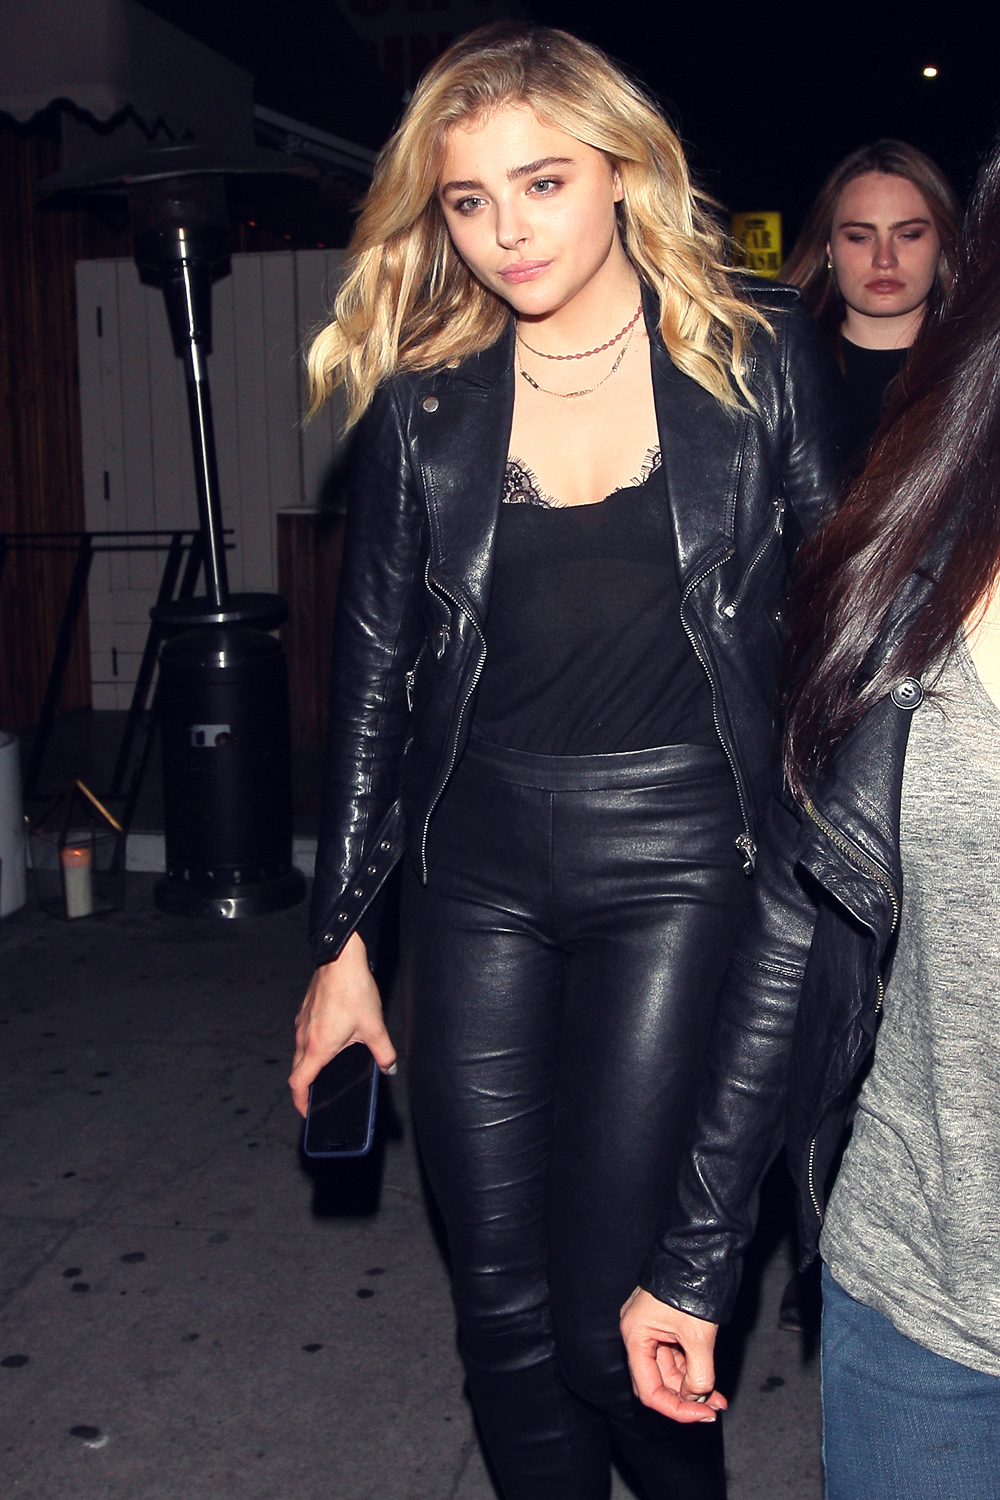 594b7d5114 Chloe Moretz Leather Pants - Leather Celebrities